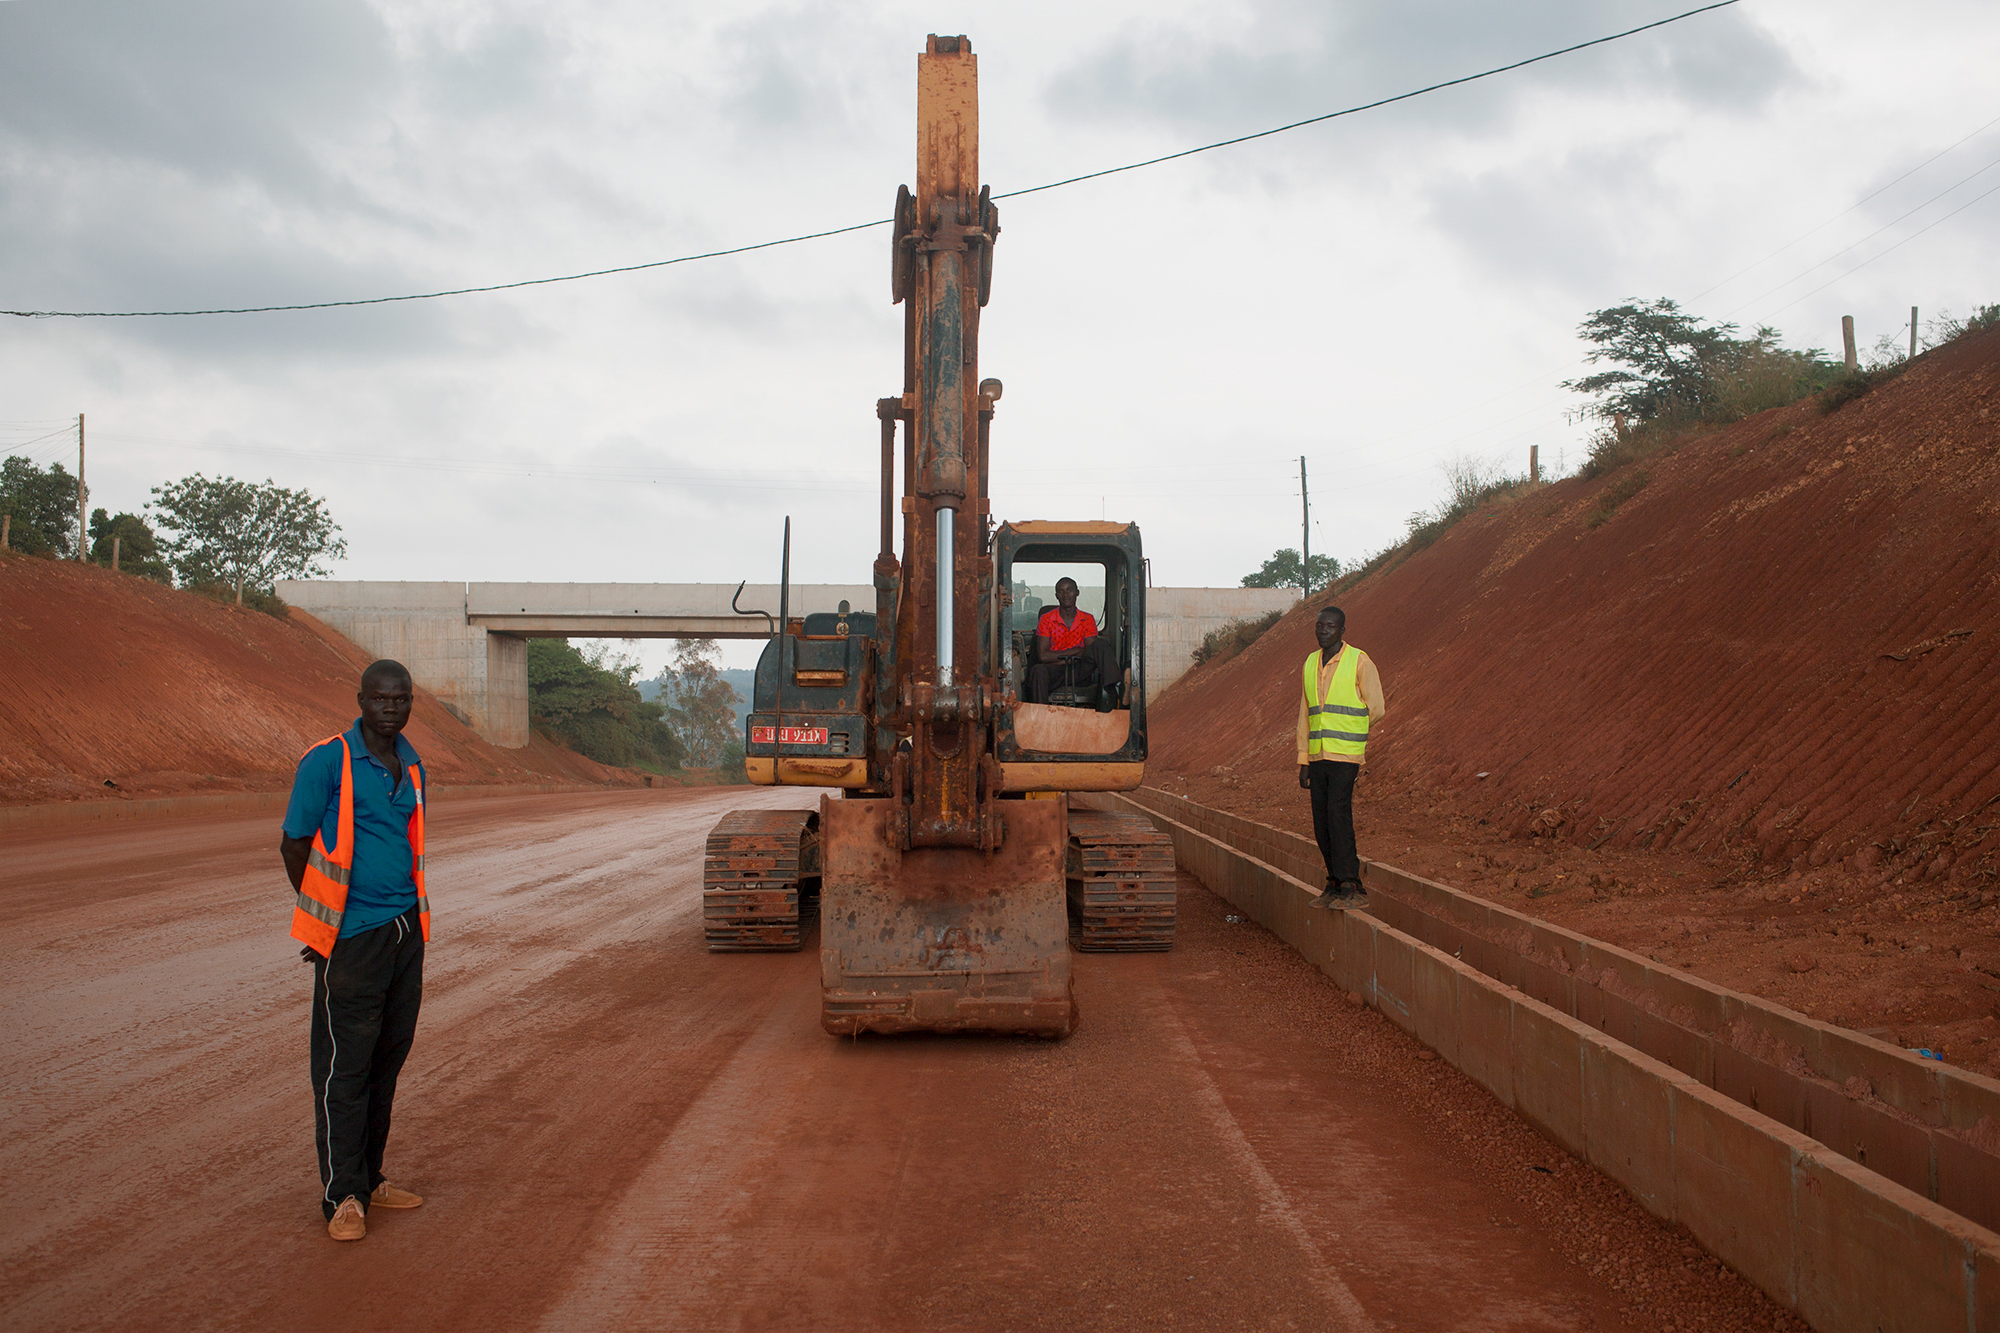 A China Communications Construction Company road construction site, between Entebbe International Airport and the city of Kampala, Uganda, 2017.